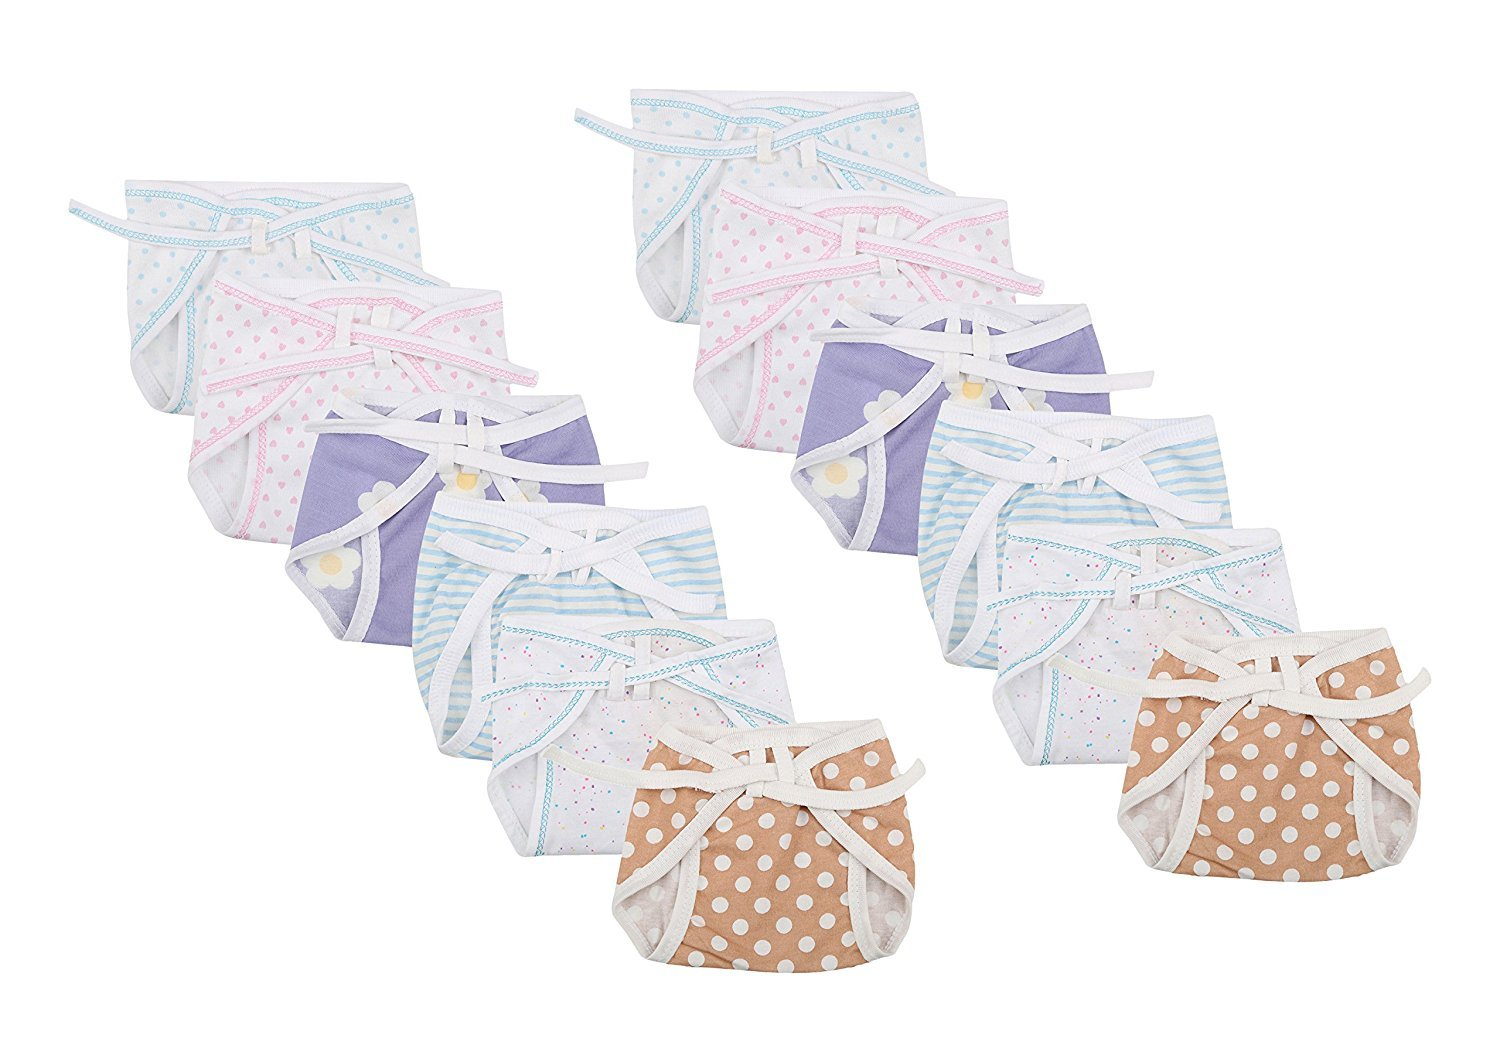 FARETO Newborn Baby Hosiery Cotton Cloth Nappies Pack Of 12 Pcs (Multi)(0-3Months)